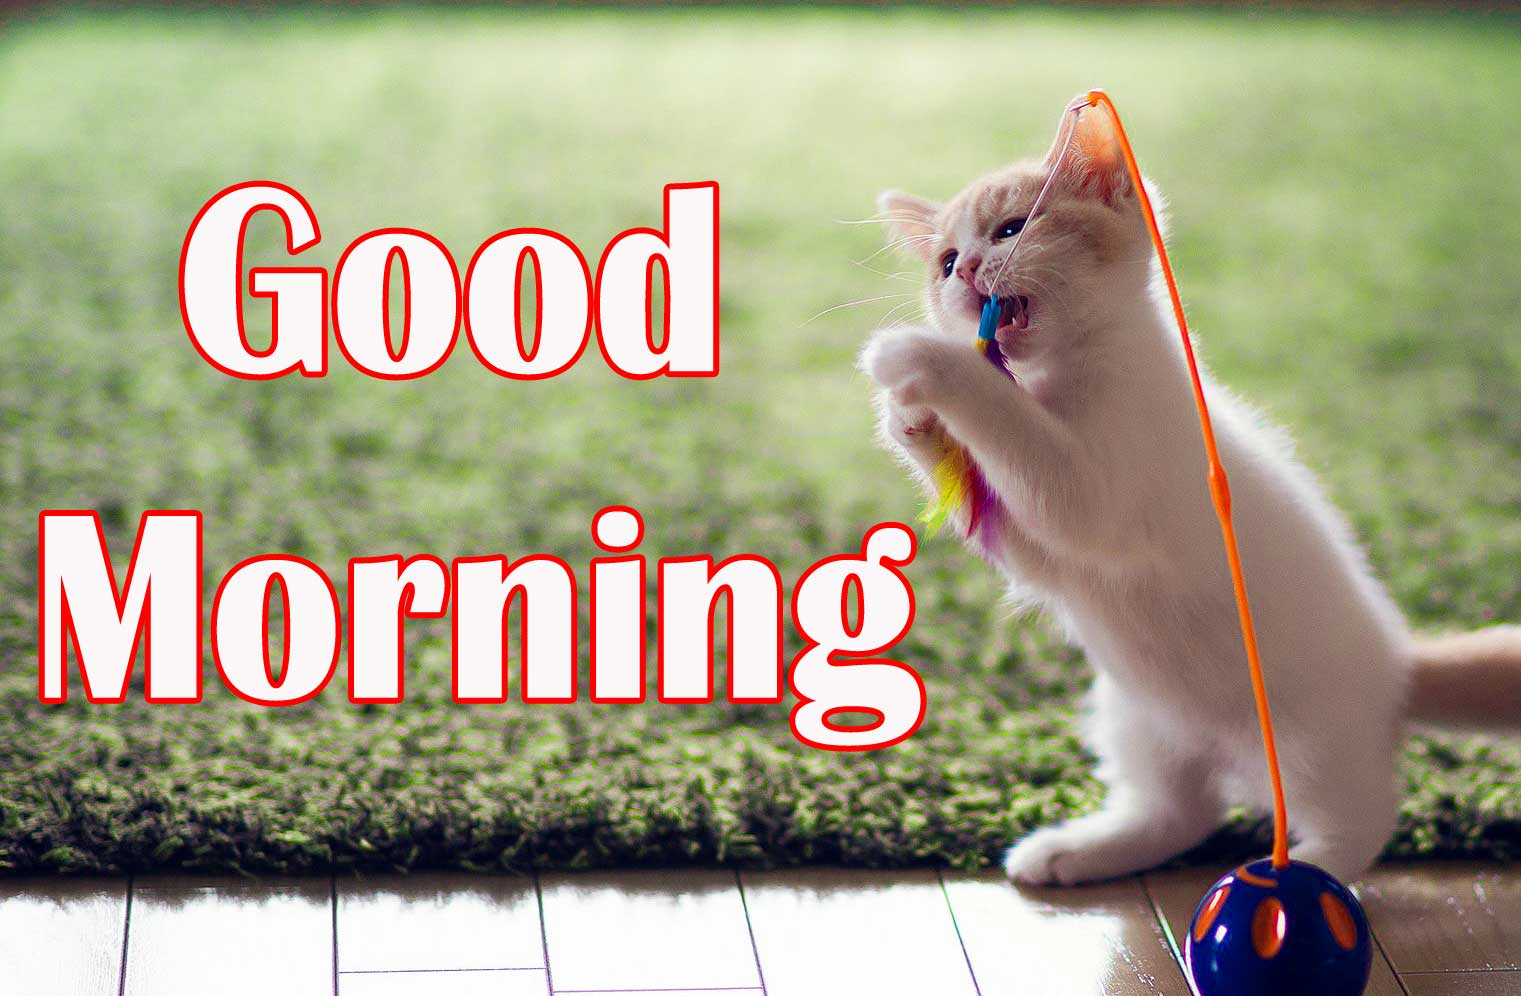 good morning Images Download 6